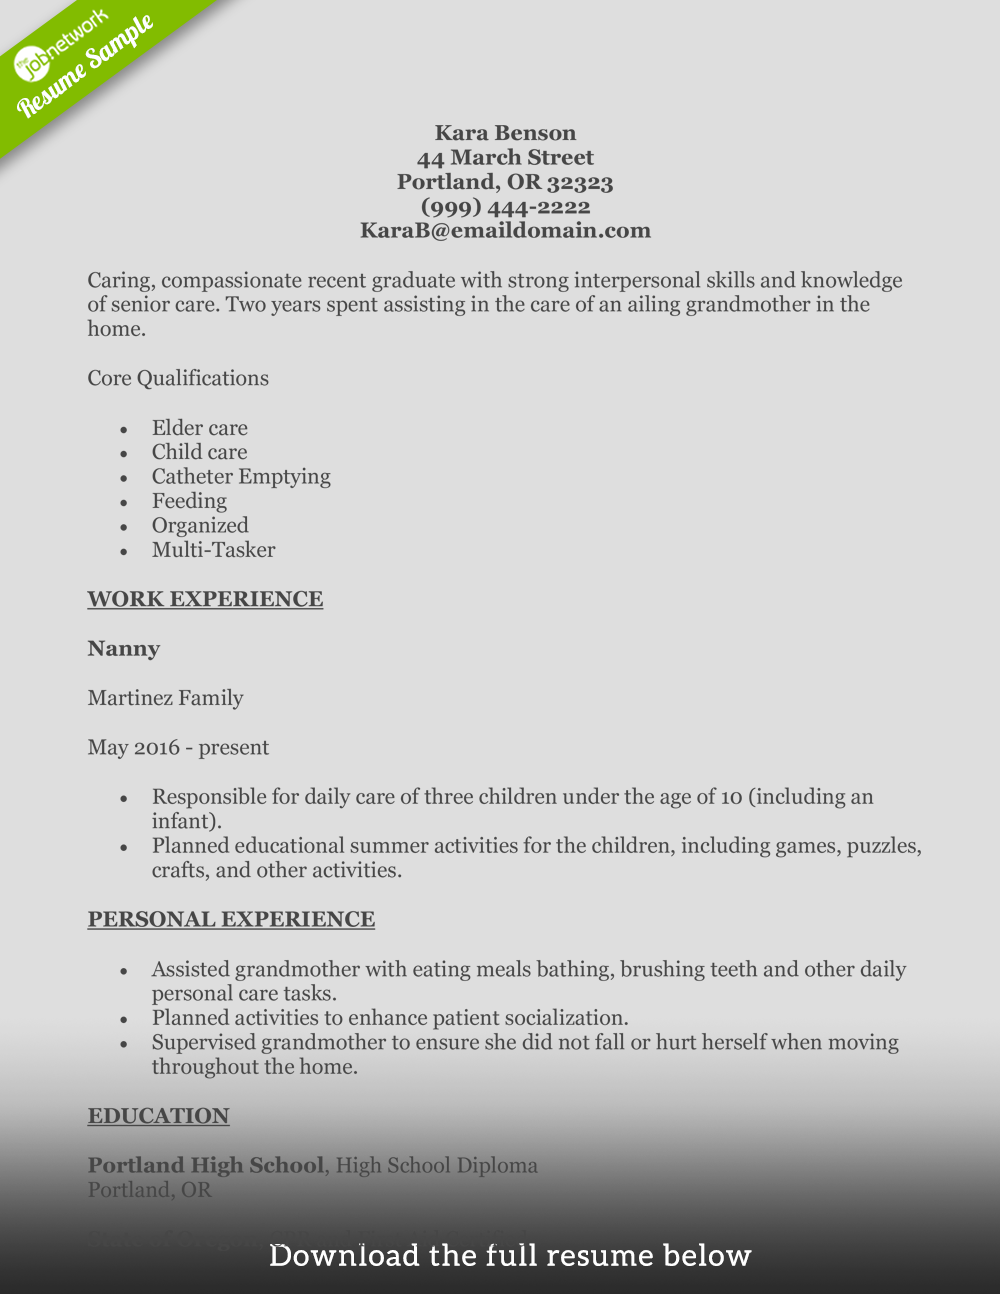 Home Health Aide Resume Entry Level  Personal Resume Examples